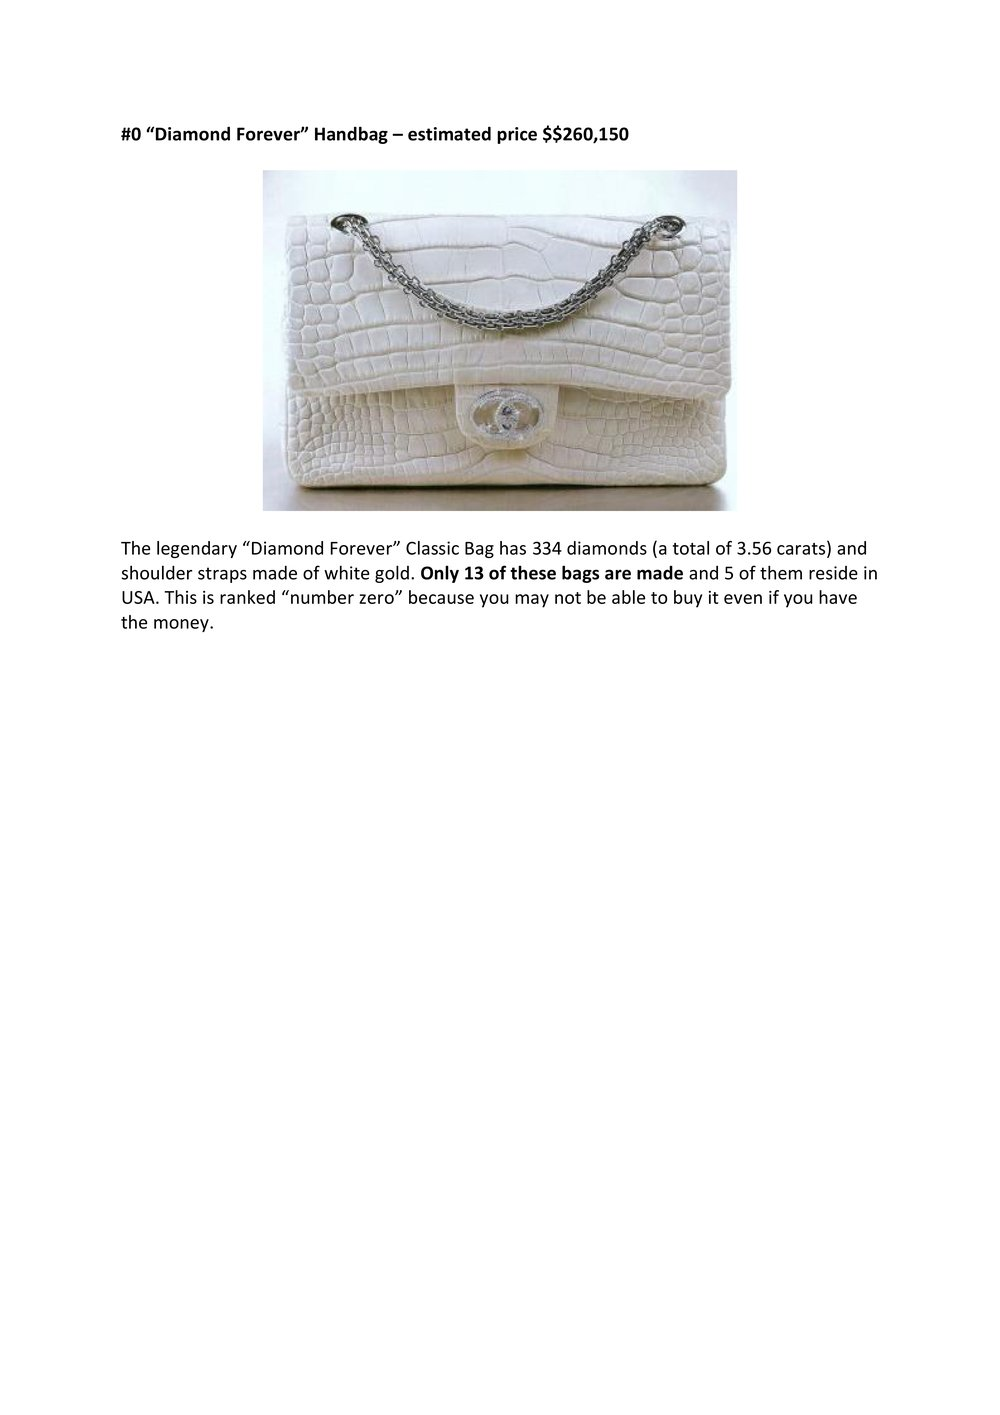 Top 10 Most Expensive Chanel Bags8.jpg